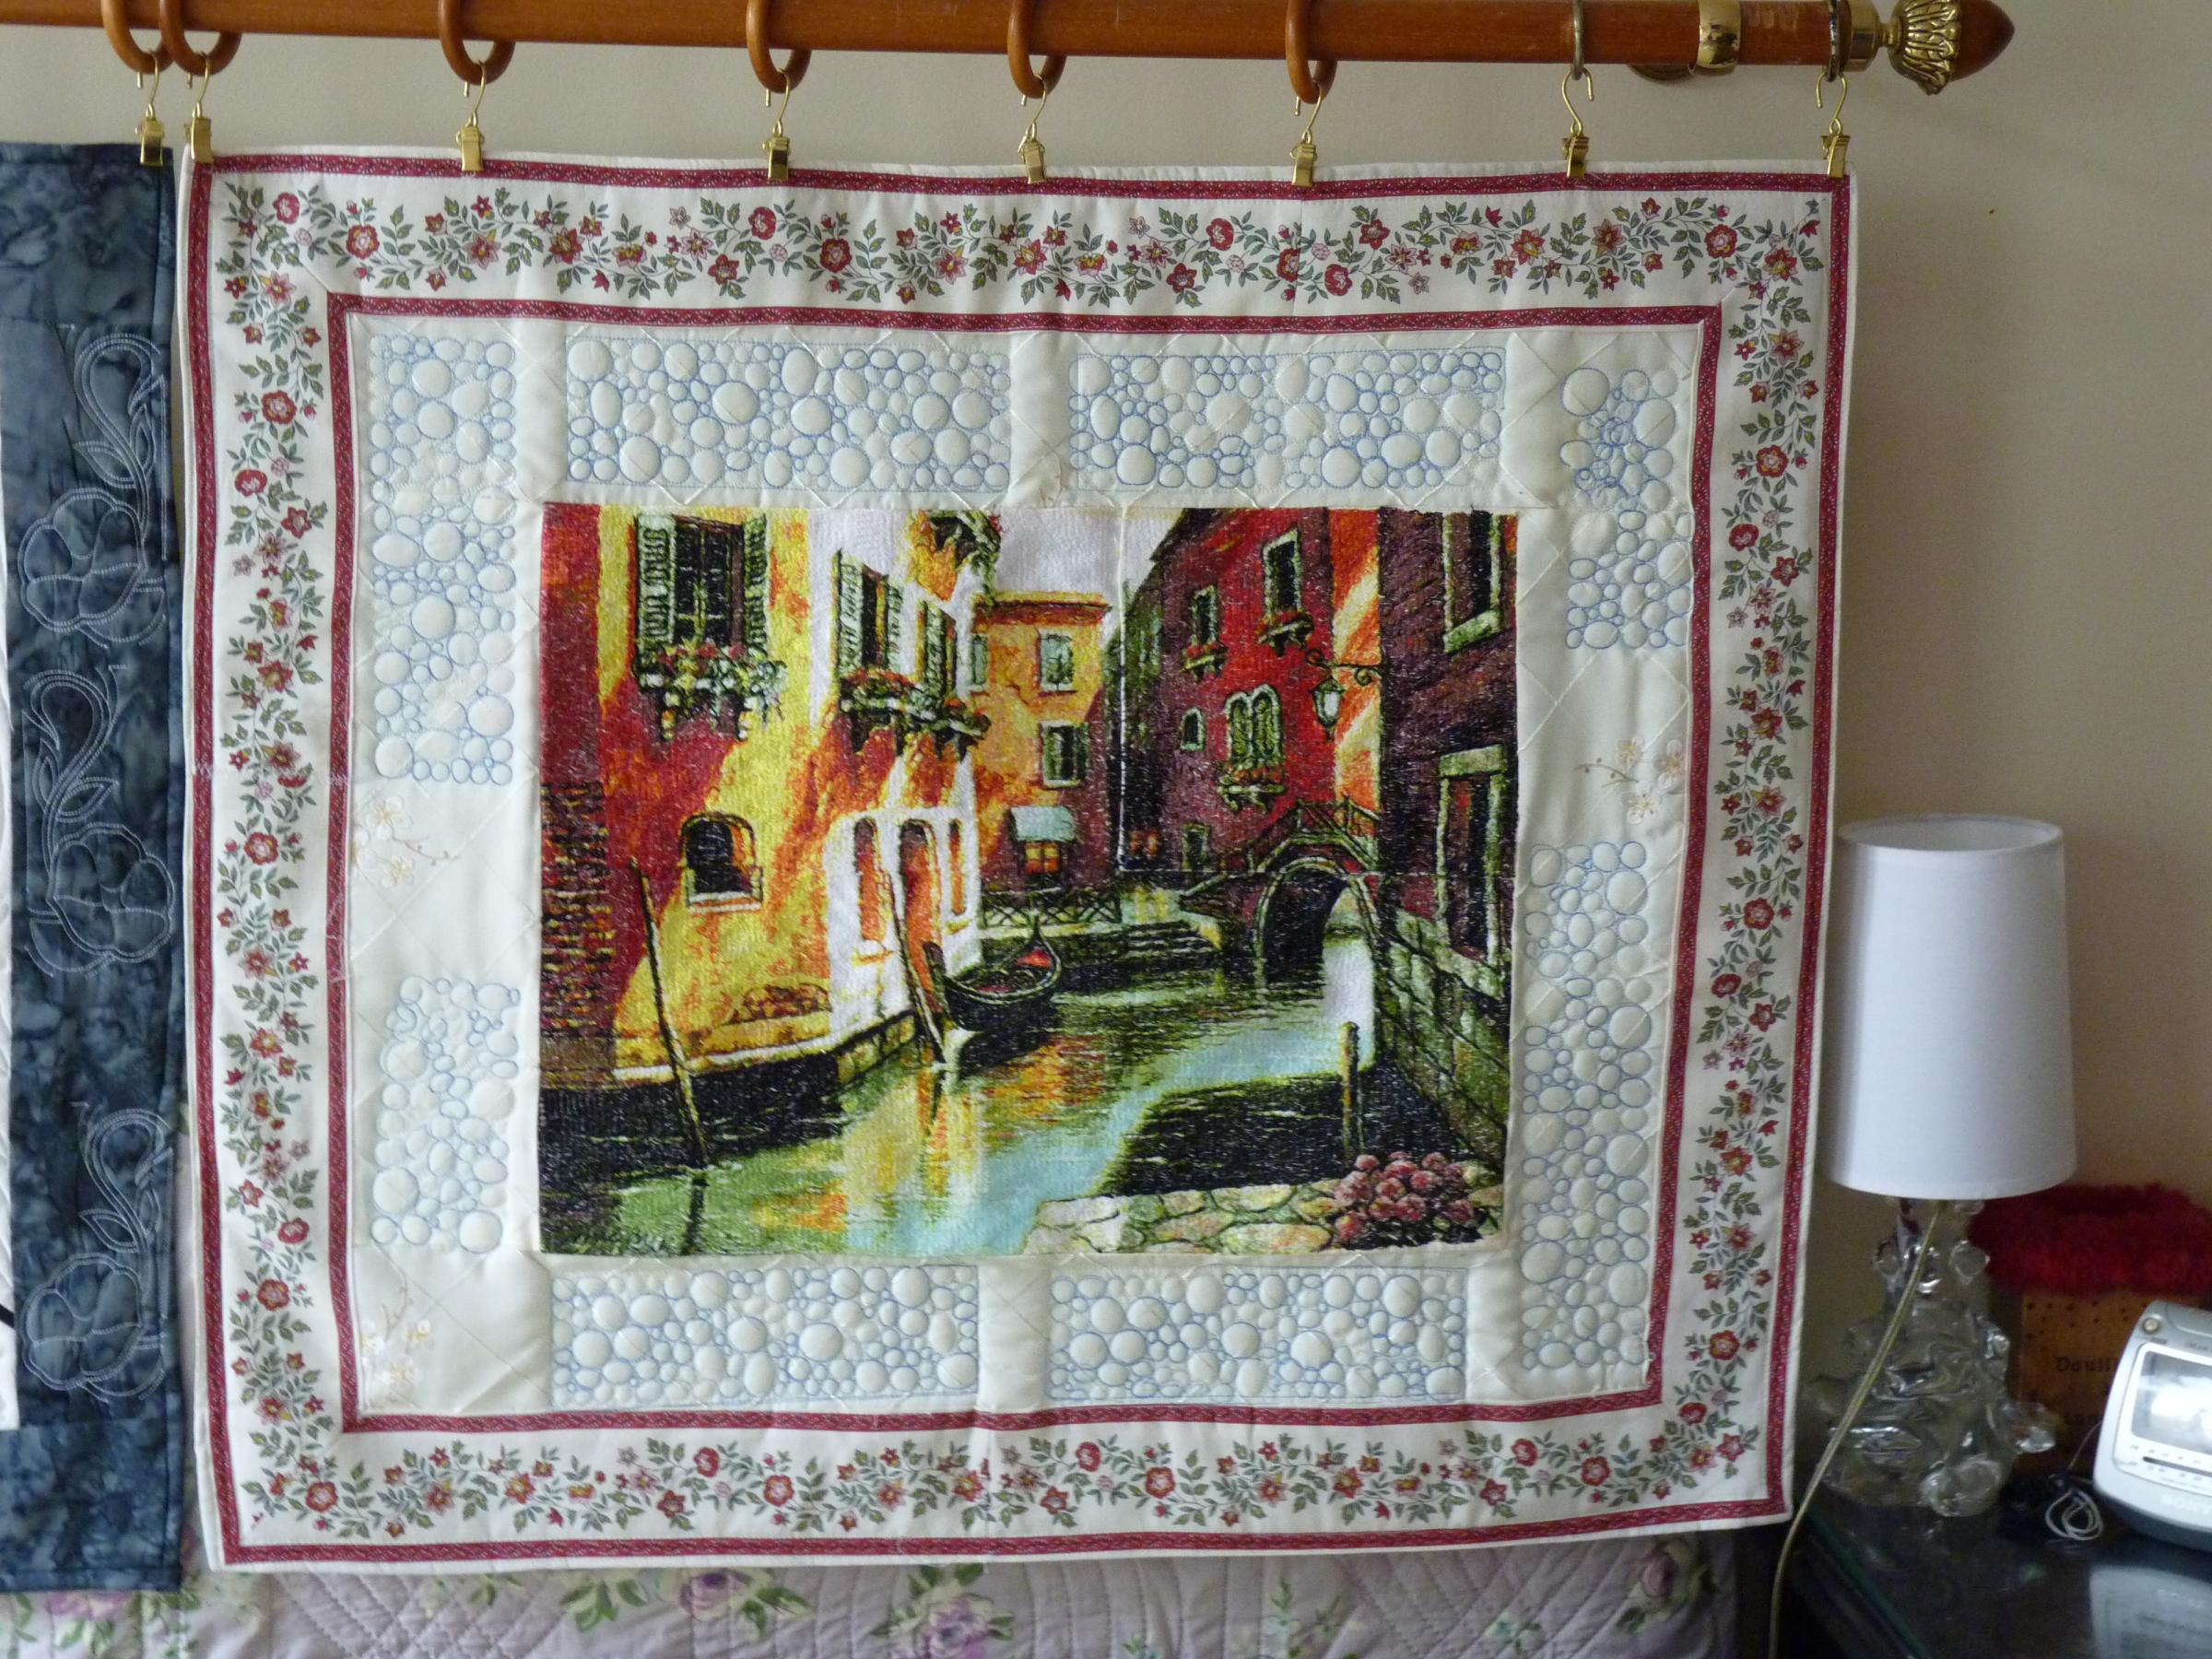 Embroidered picture of Venice canal